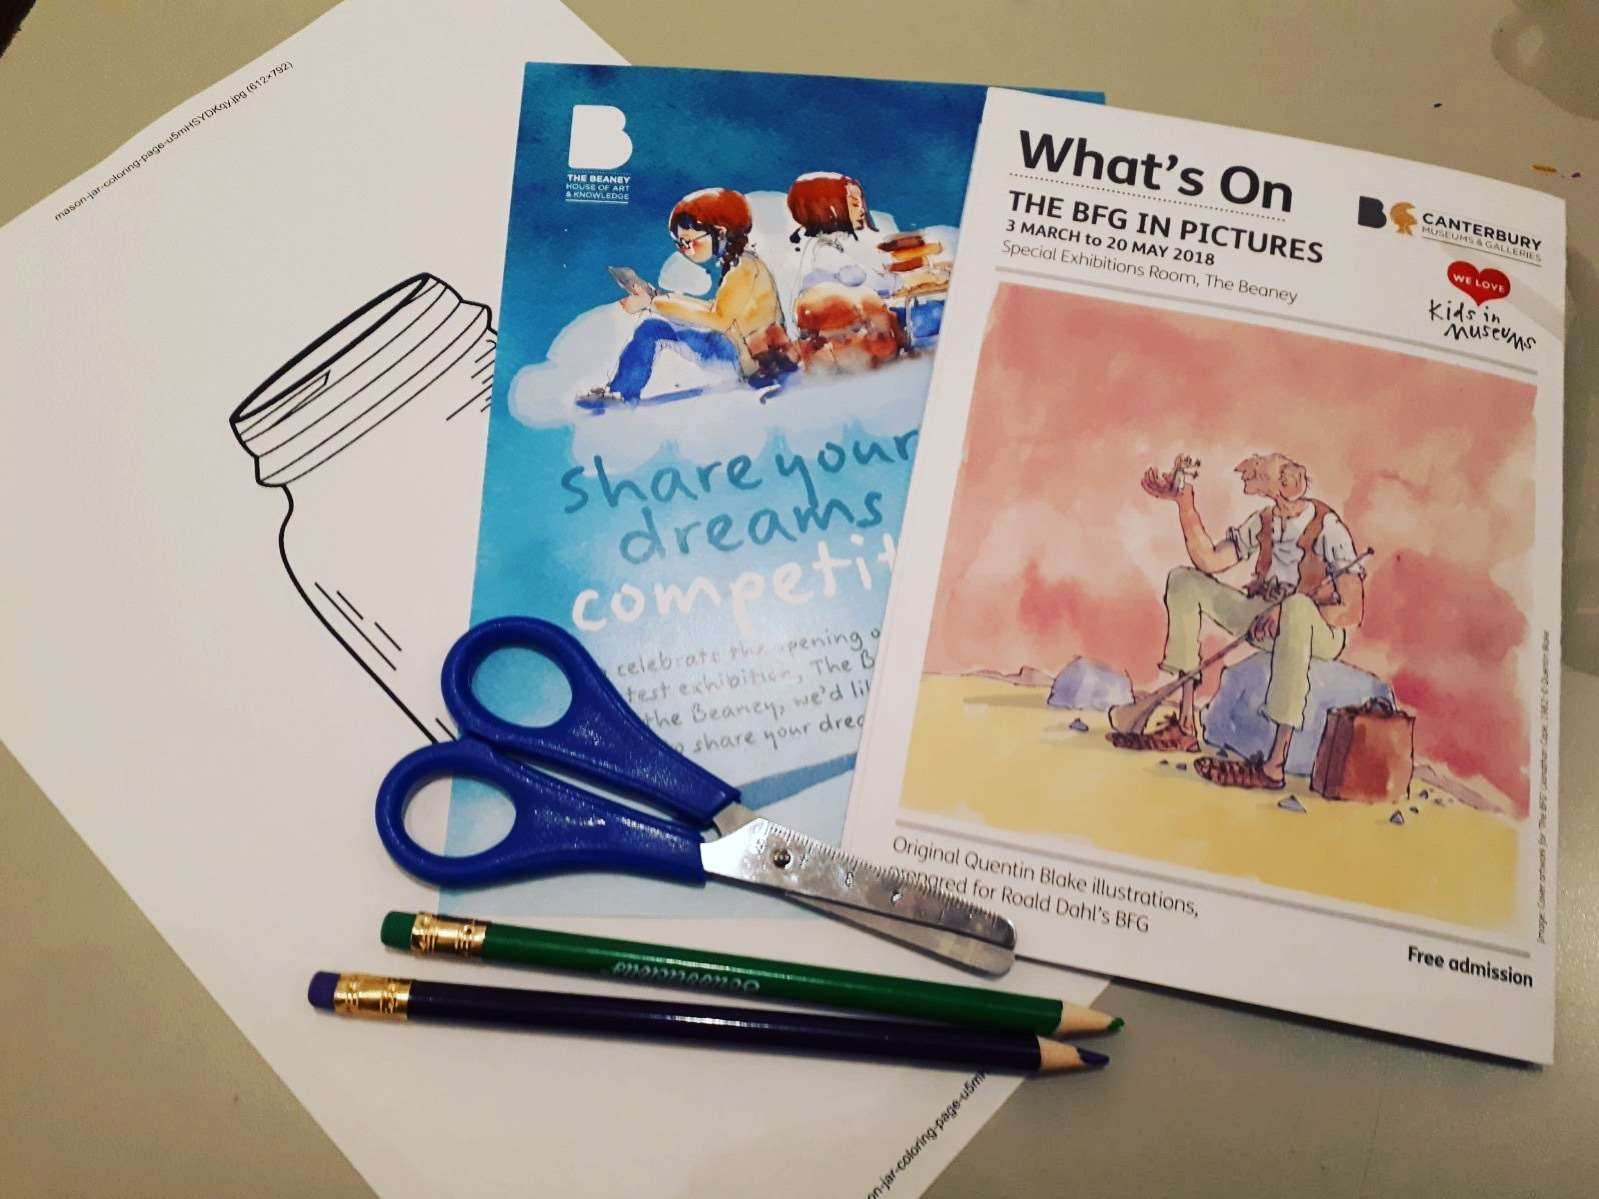 There are plenty of BFG-themed creative activities to choose from